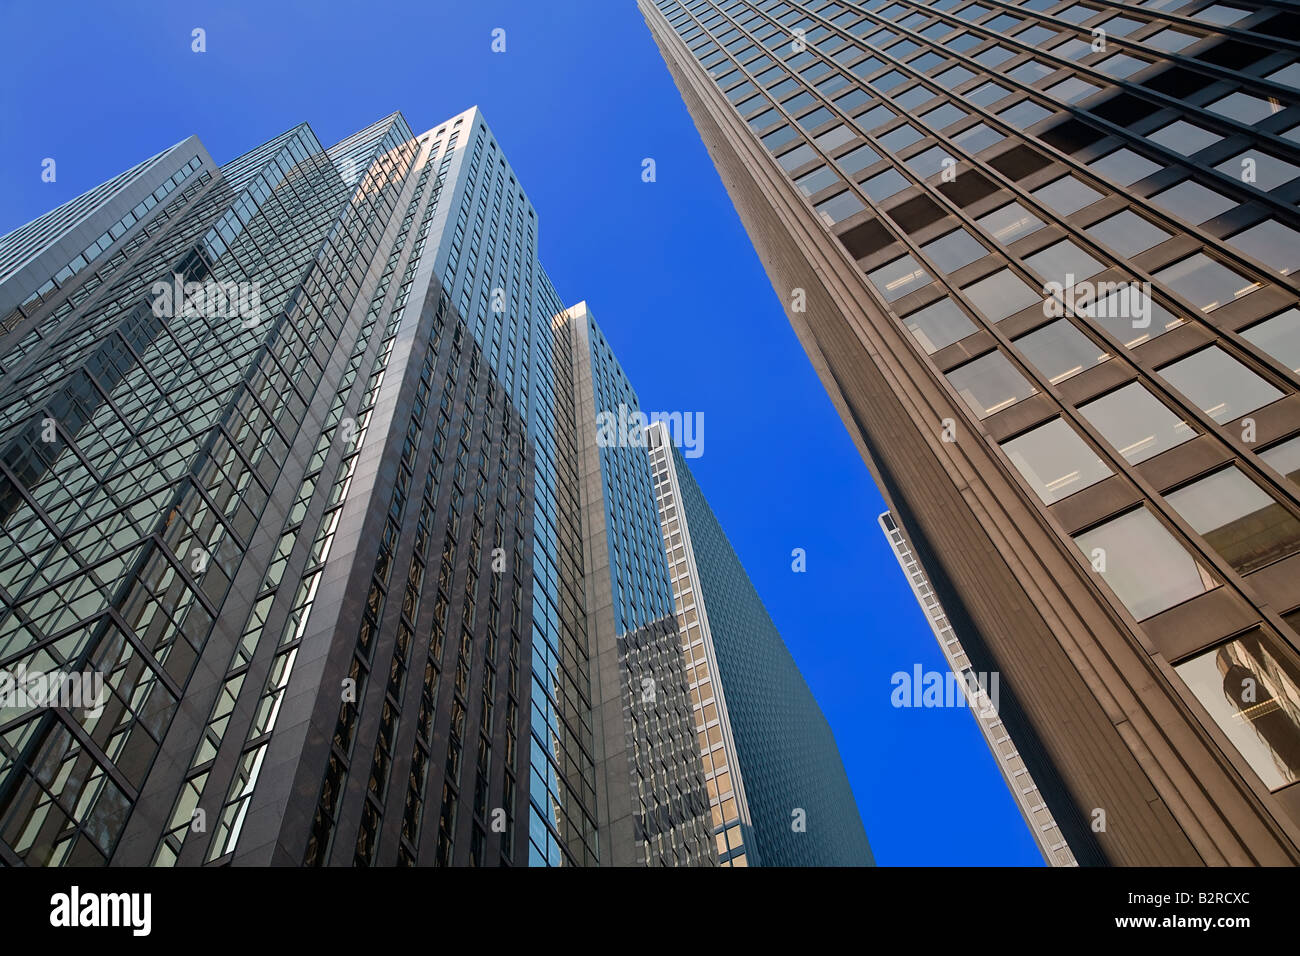 A view of skyscrapers while looking up from the street Stock Photo